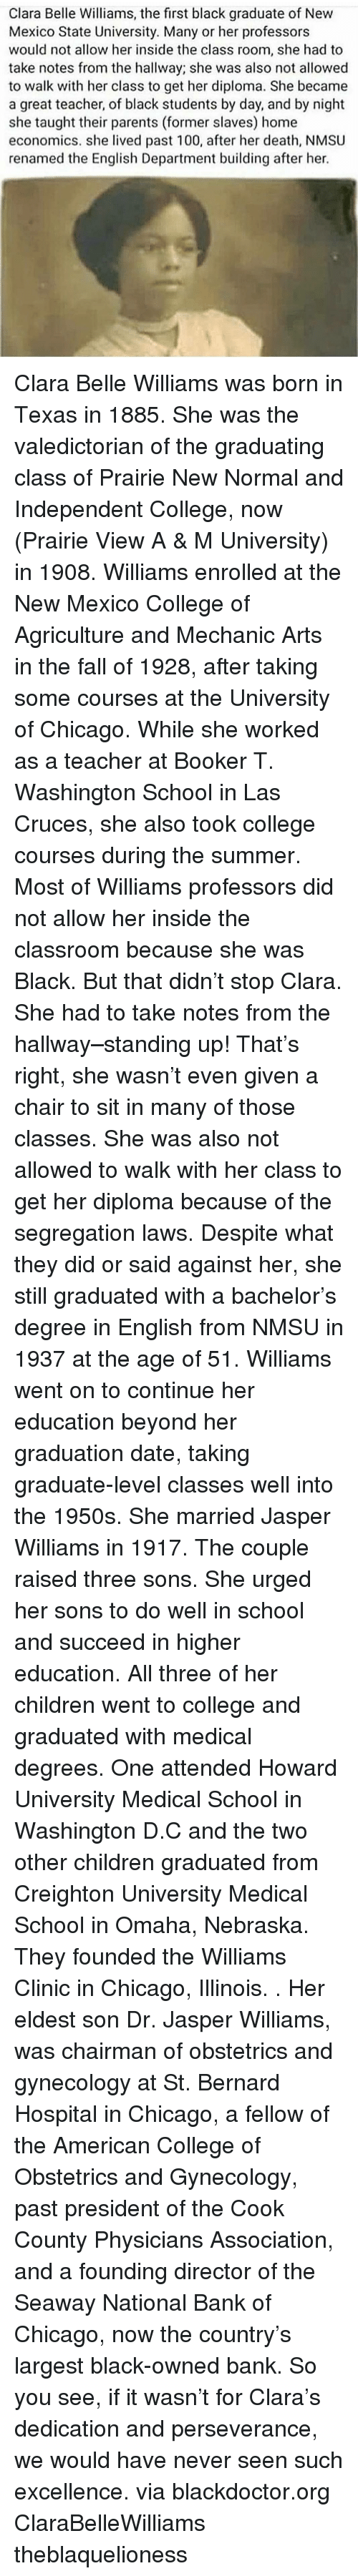 Perseverance: Clara Belle Williams, the first black graduate of New  Mexico State University. Many or her professors  would not allow her inside the class room, she had to  take notes from the hallway; she was also not allowed  to walk with her class to get her diploma. She became  a great teacher, of black students by day, and by night  she taught their parents (former slaves) home  economics. she lived past 100, after her death, NMSU  renamed the English Department building after her. Clara Belle Williams was born in Texas in 1885. She was the valedictorian of the graduating class of Prairie New Normal and Independent College, now (Prairie View A & M University) in 1908. Williams enrolled at the New Mexico College of Agriculture and Mechanic Arts in the fall of 1928, after taking some courses at the University of Chicago. While she worked as a teacher at Booker T. Washington School in Las Cruces, she also took college courses during the summer. Most of Williams professors did not allow her inside the classroom because she was Black. But that didn't stop Clara. She had to take notes from the hallway–standing up! That's right, she wasn't even given a chair to sit in many of those classes. She was also not allowed to walk with her class to get her diploma because of the segregation laws. Despite what they did or said against her, she still graduated with a bachelor's degree in English from NMSU in 1937 at the age of 51. Williams went on to continue her education beyond her graduation date, taking graduate-level classes well into the 1950s. She married Jasper Williams in 1917. The couple raised three sons. She urged her sons to do well in school and succeed in higher education. All three of her children went to college and graduated with medical degrees. One attended Howard University Medical School in Washington D.C and the two other children graduated from Creighton University Medical School in Omaha, Nebraska. They founded the Williams Clinic in Chicago, Illinois. . Her eldest son Dr. Jasper Williams, was chairman of obstetrics and gynecology at St. Bernard Hospital in Chicago, a fellow of the American College of Obstetrics and Gynecology, past president of the Cook County Physicians Association, and a founding director of the Seaway National Bank of Chicago, now the country's largest black-owned bank. So you see, if it wasn't for Clara's dedication and perseverance, we would have never seen such excellence. via blackdoctor.org ClaraBelleWilliams theblaquelioness